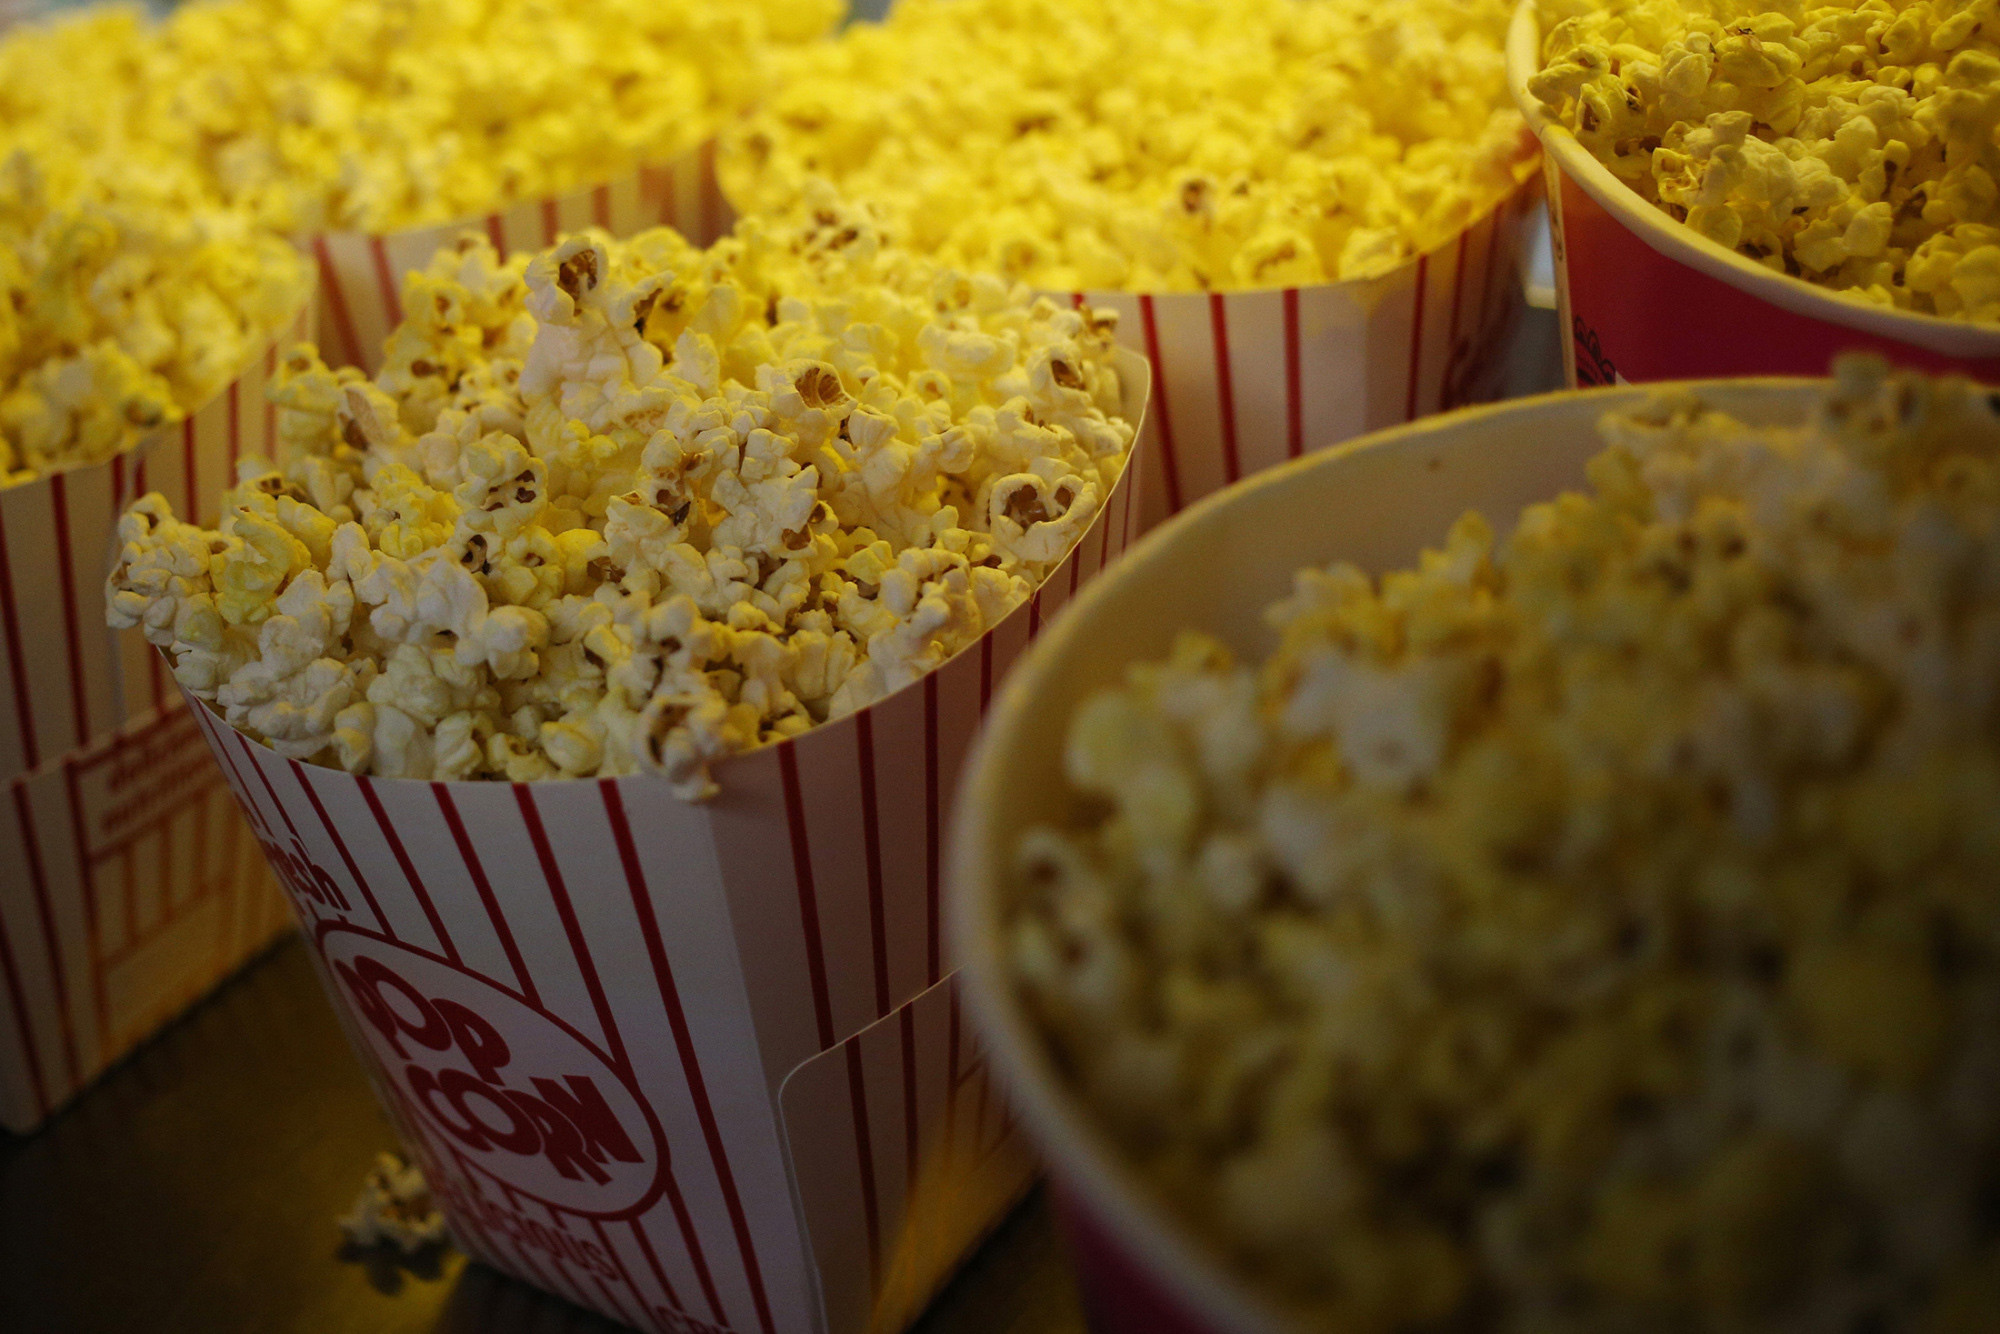 Even movie theater popcorn could become a victim if NAFTA ends ...